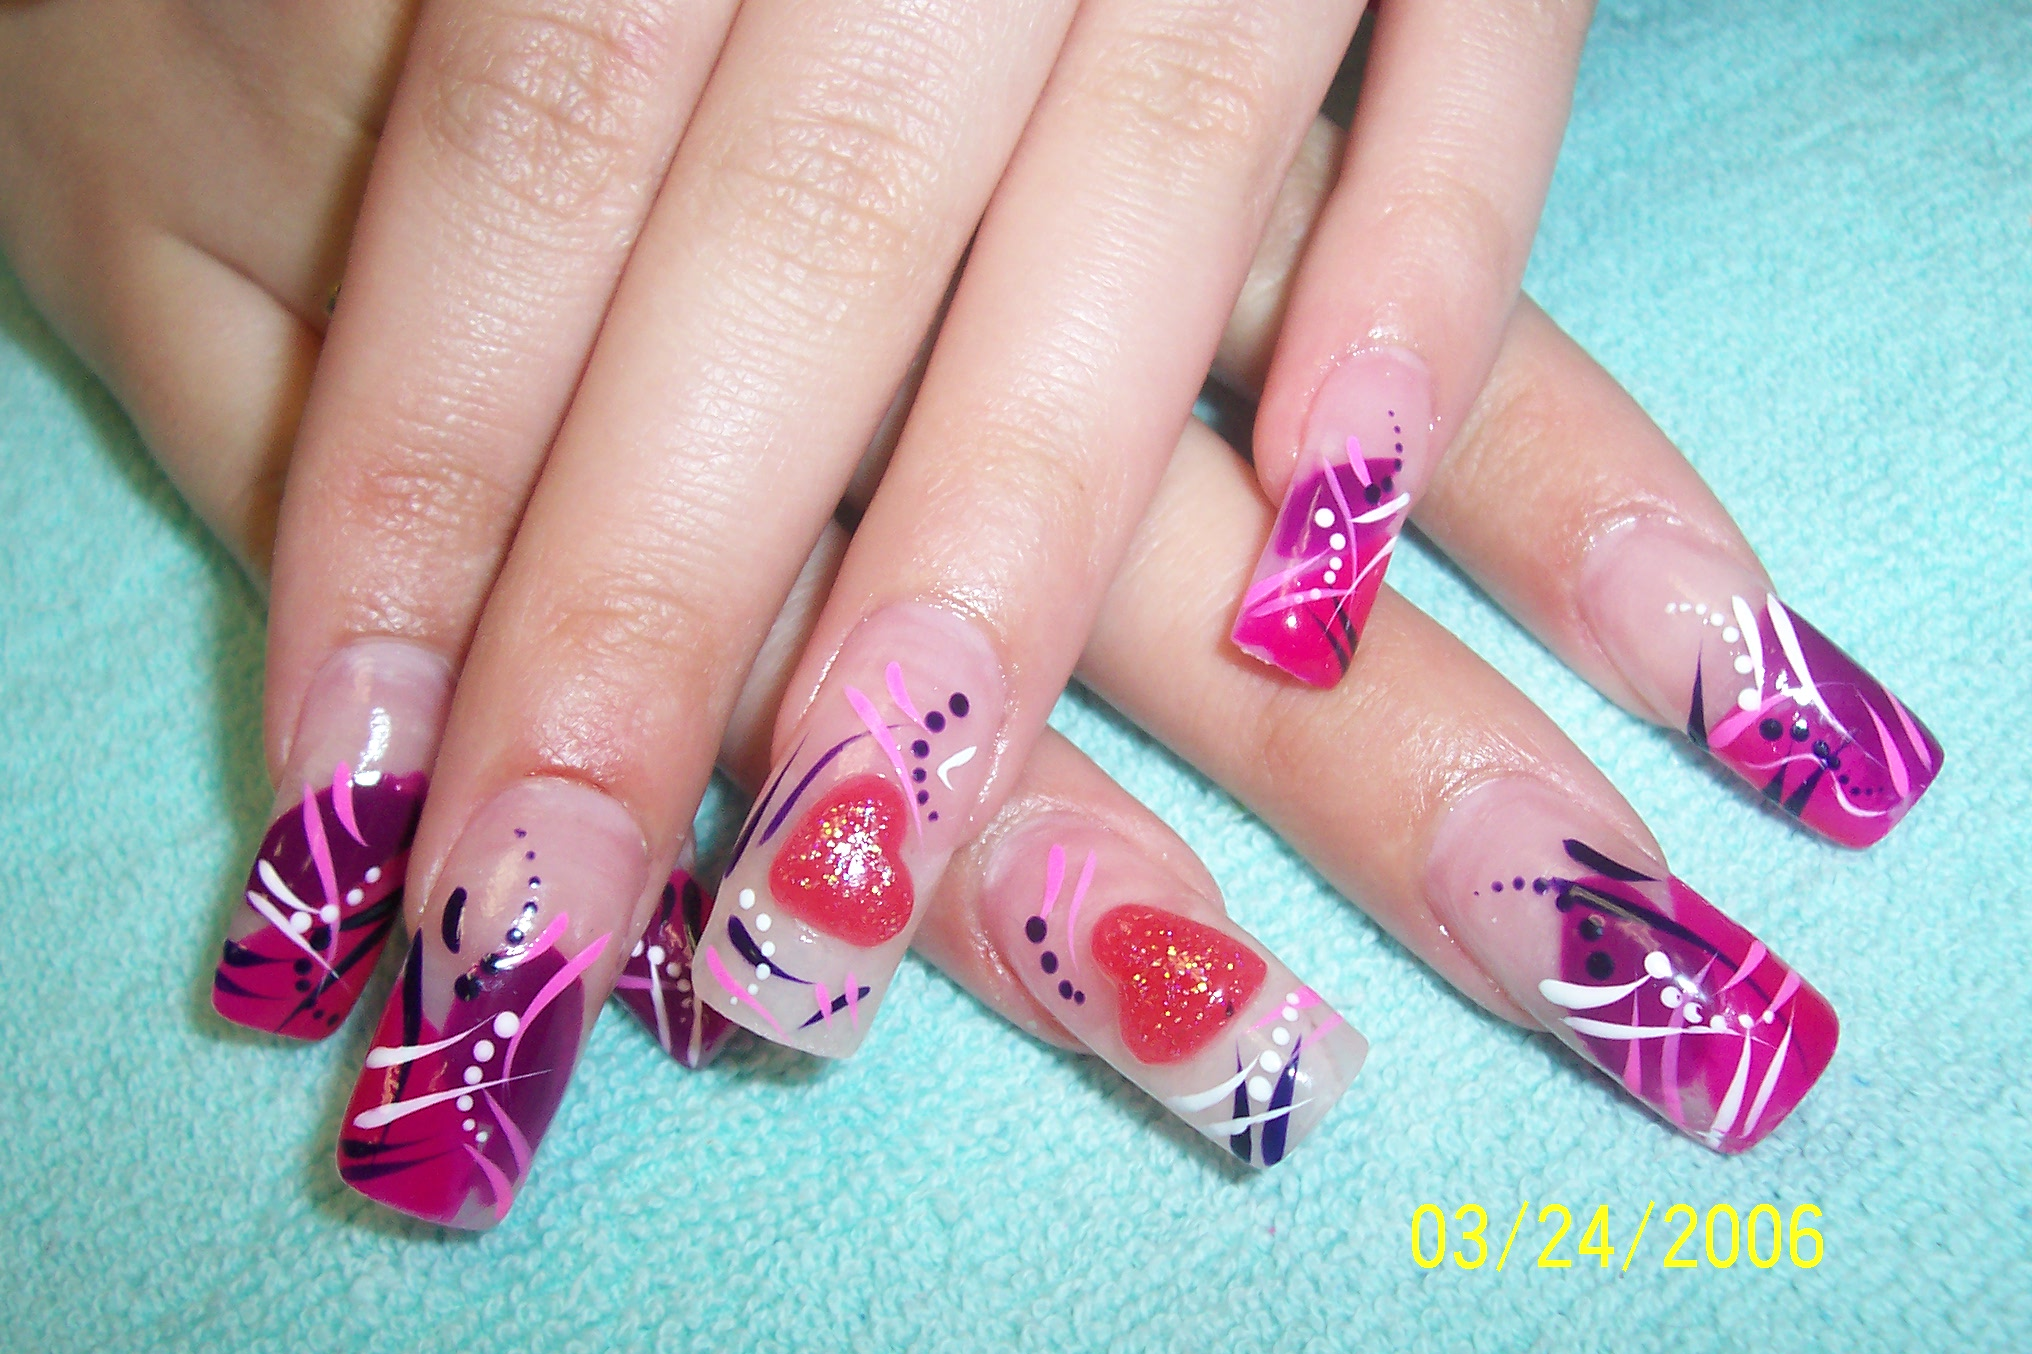 The hearts in these nails are formed using red acrylic. The red hearts ...